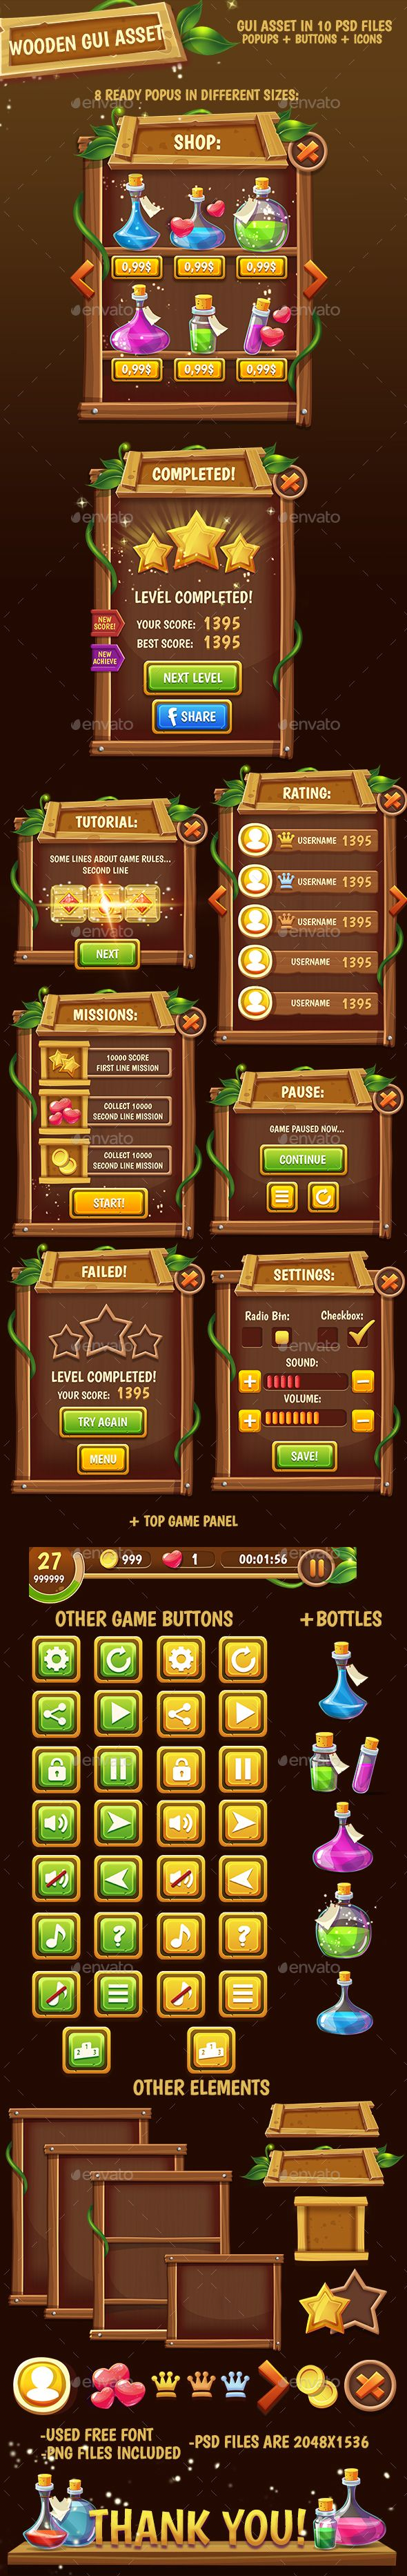 Fantasy Wooded Game Interface  #app game #assets #button • Available here → http://graphicriver.net/item/fantasy-wooded-game-interface/15888421?ref=pxcr